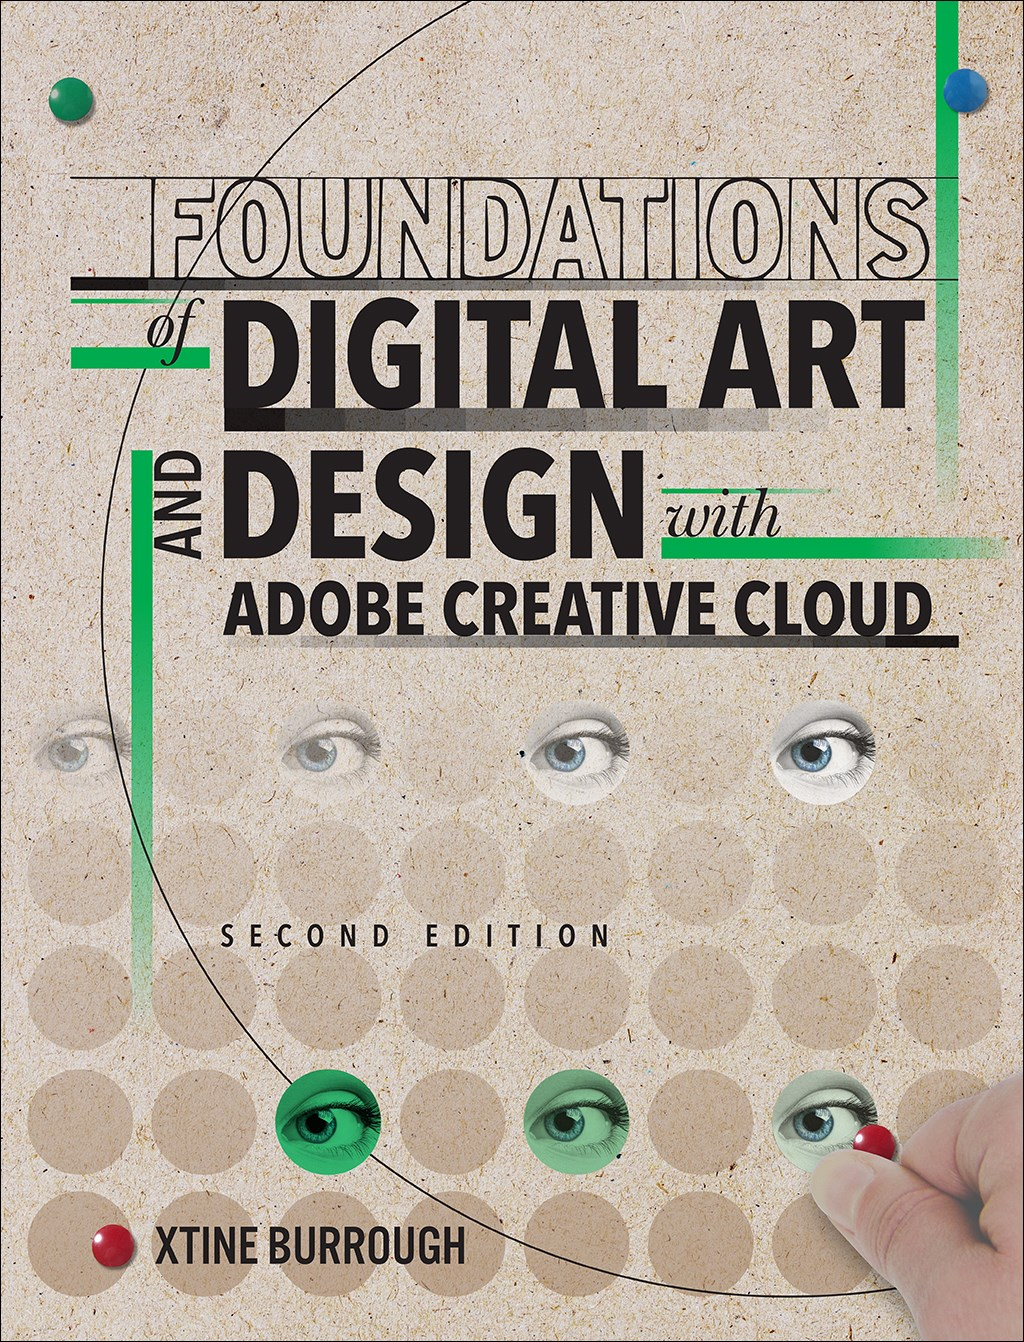 Foundations of Digital Art and Design with Adobe Creative Cloud